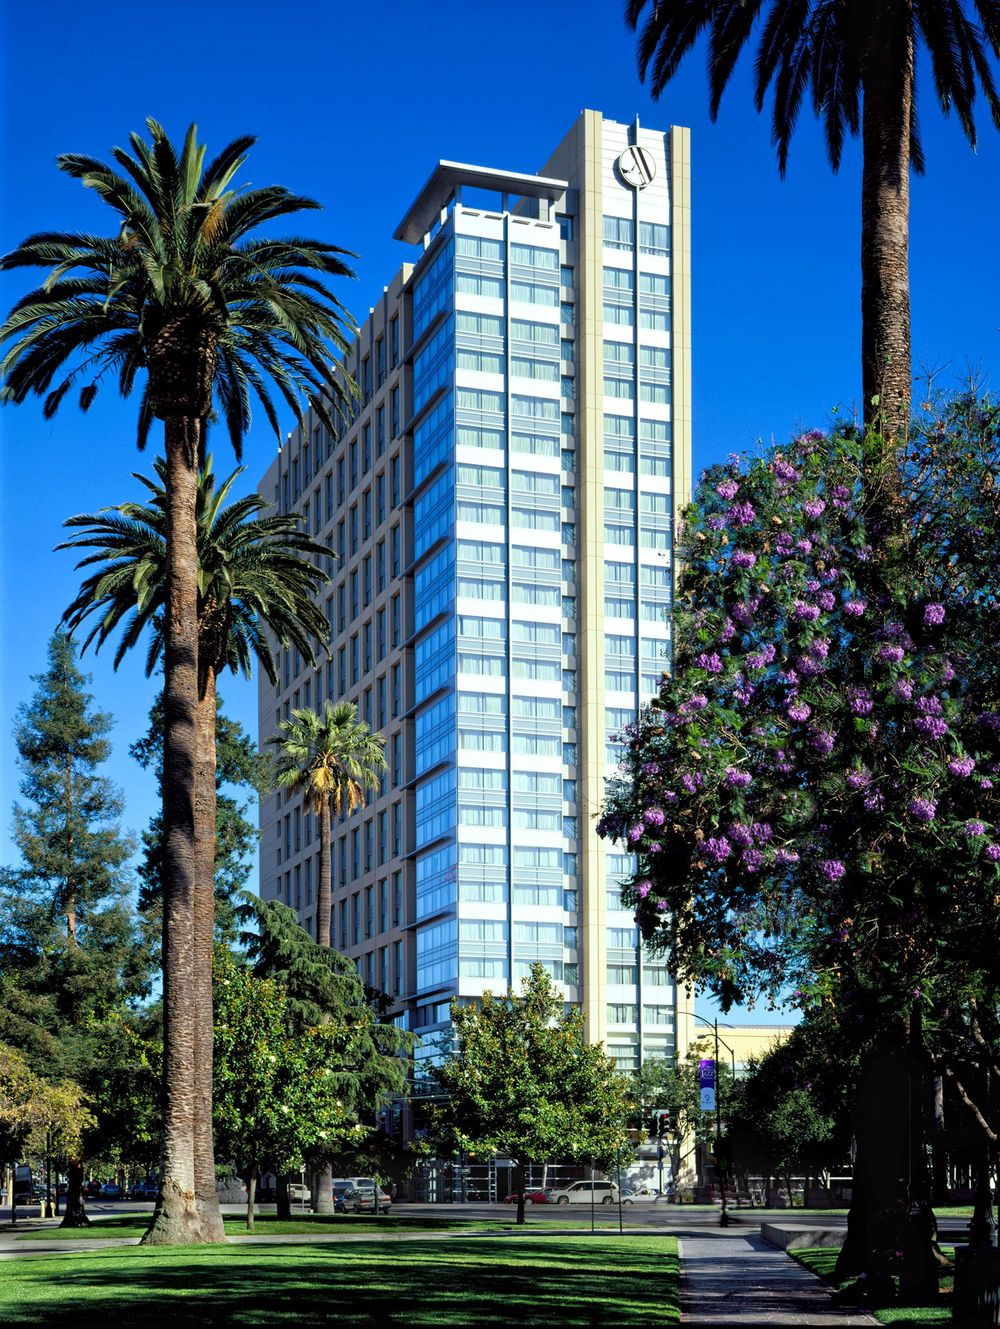 John-Sutton-Photography-Marriott San Jose Exterior